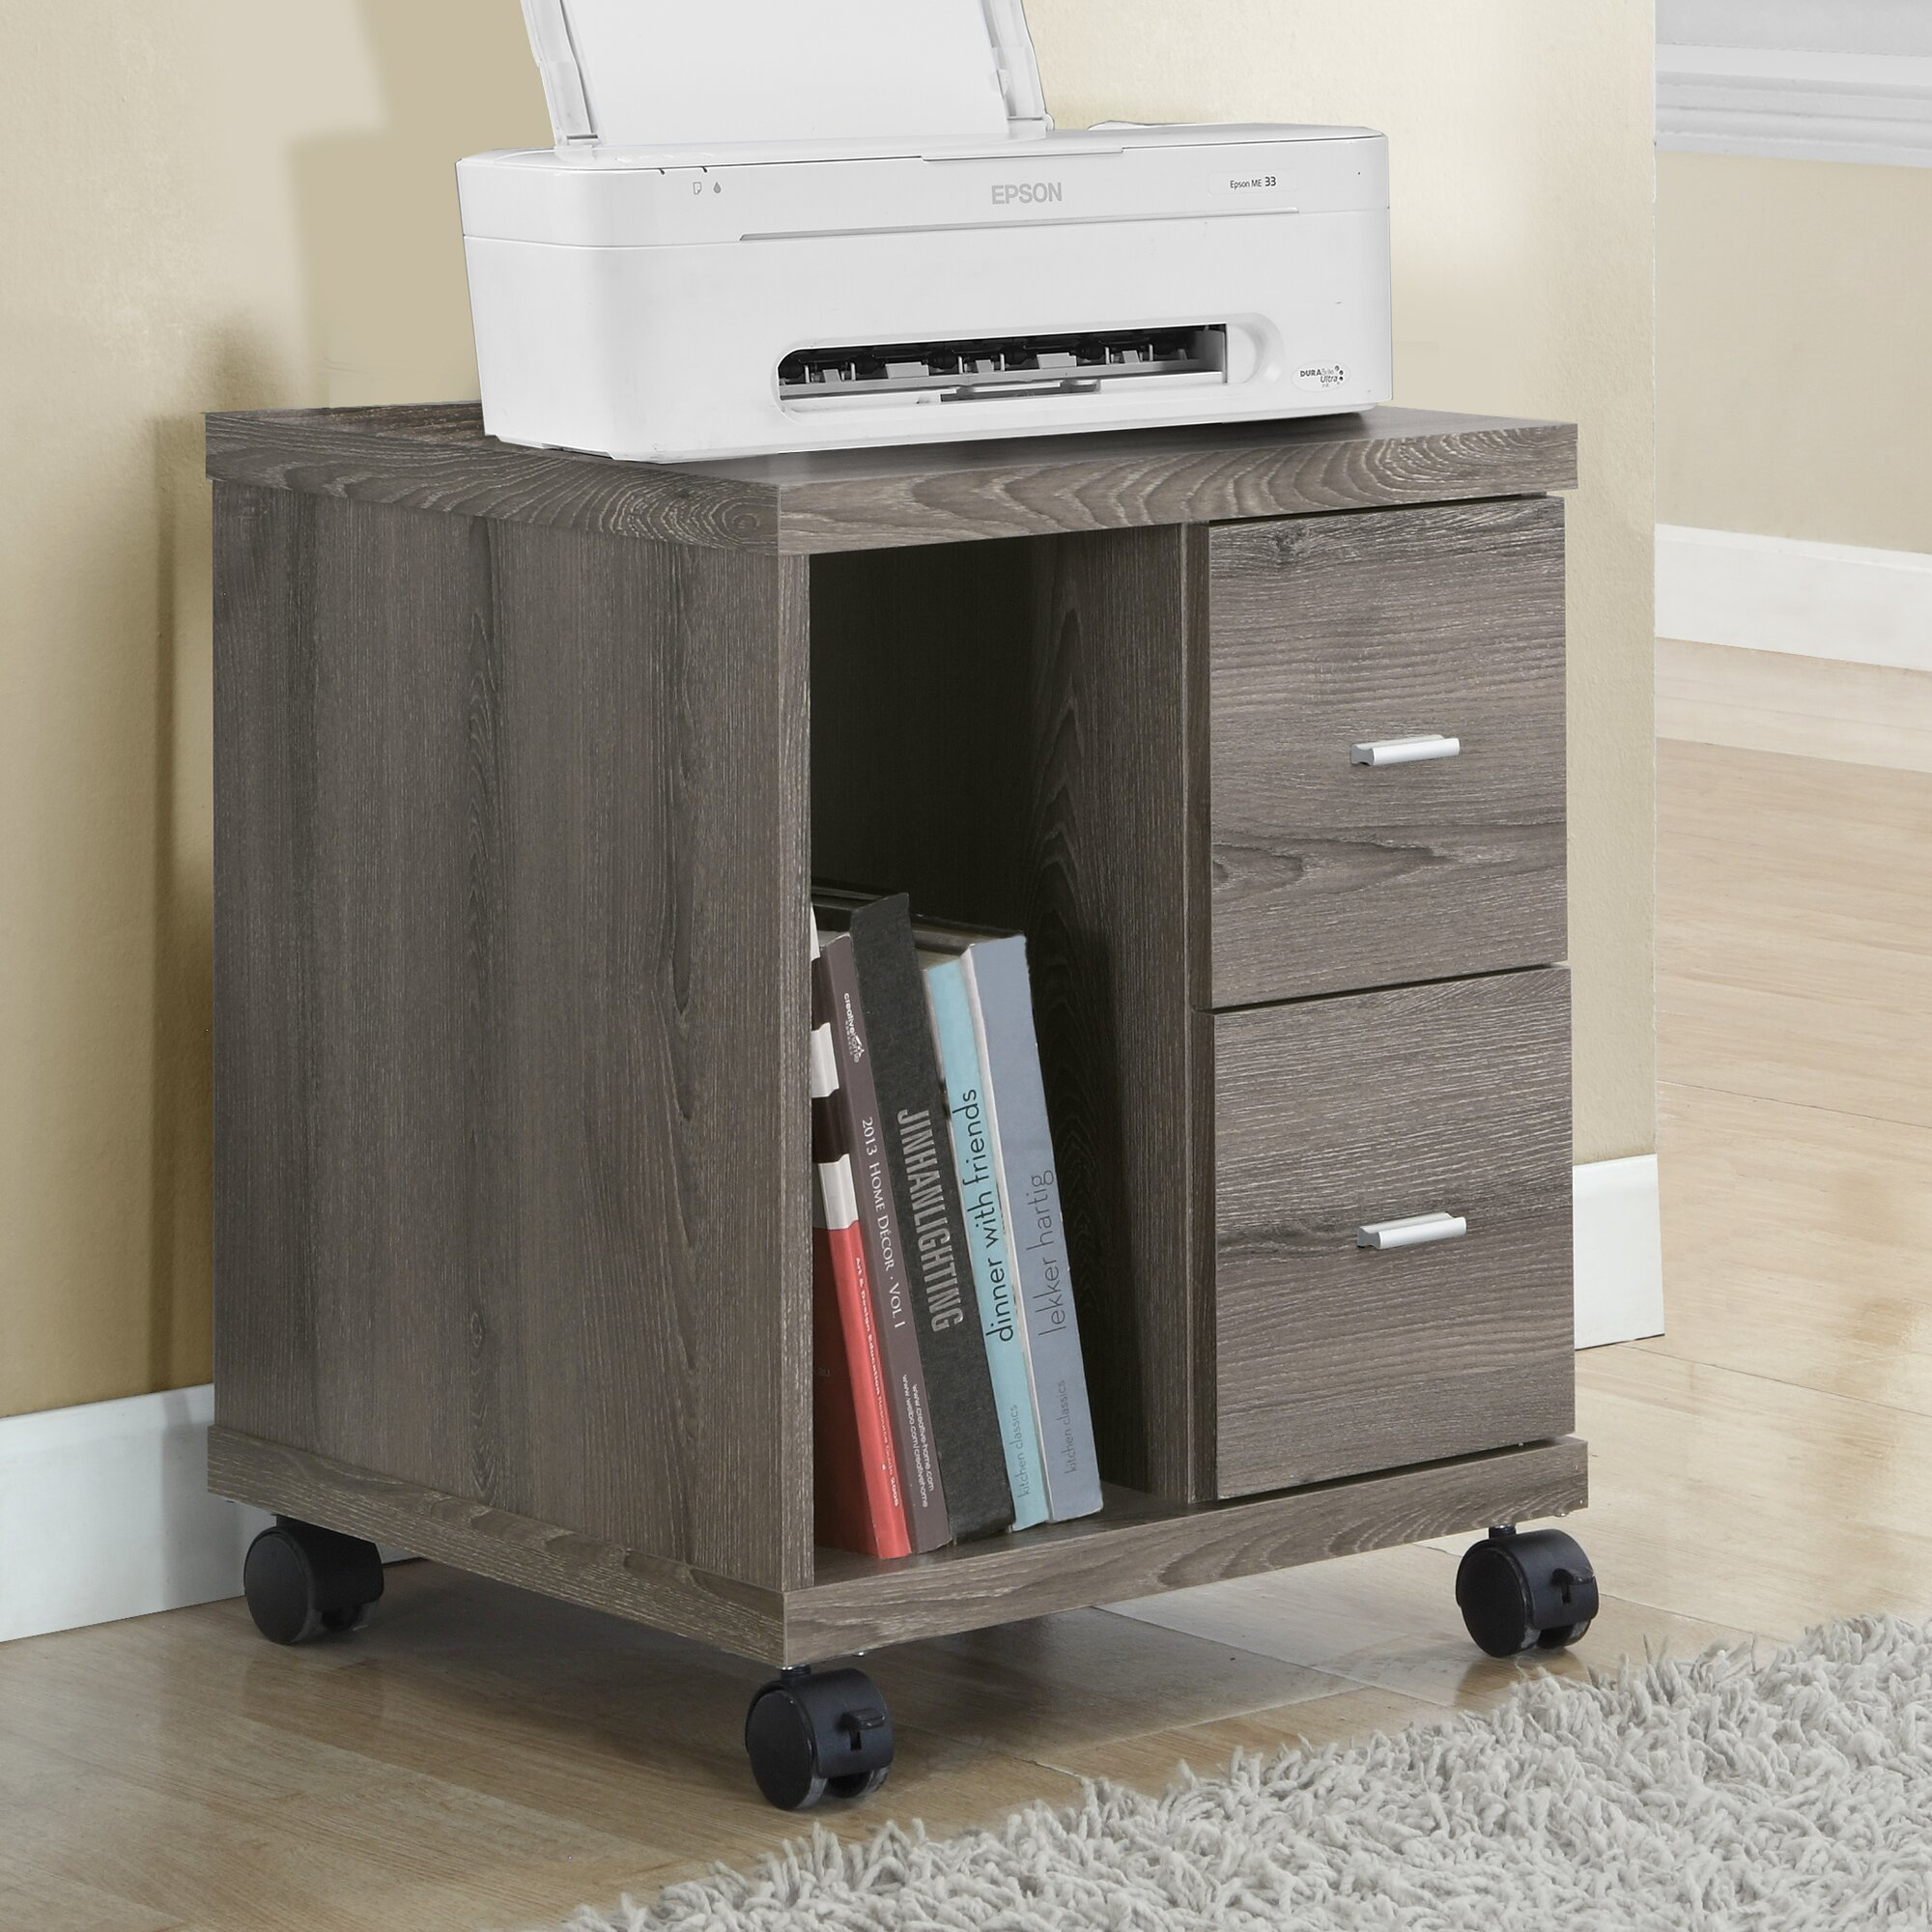 Mobile Printer Stand With Drawers - Best Drawer Model